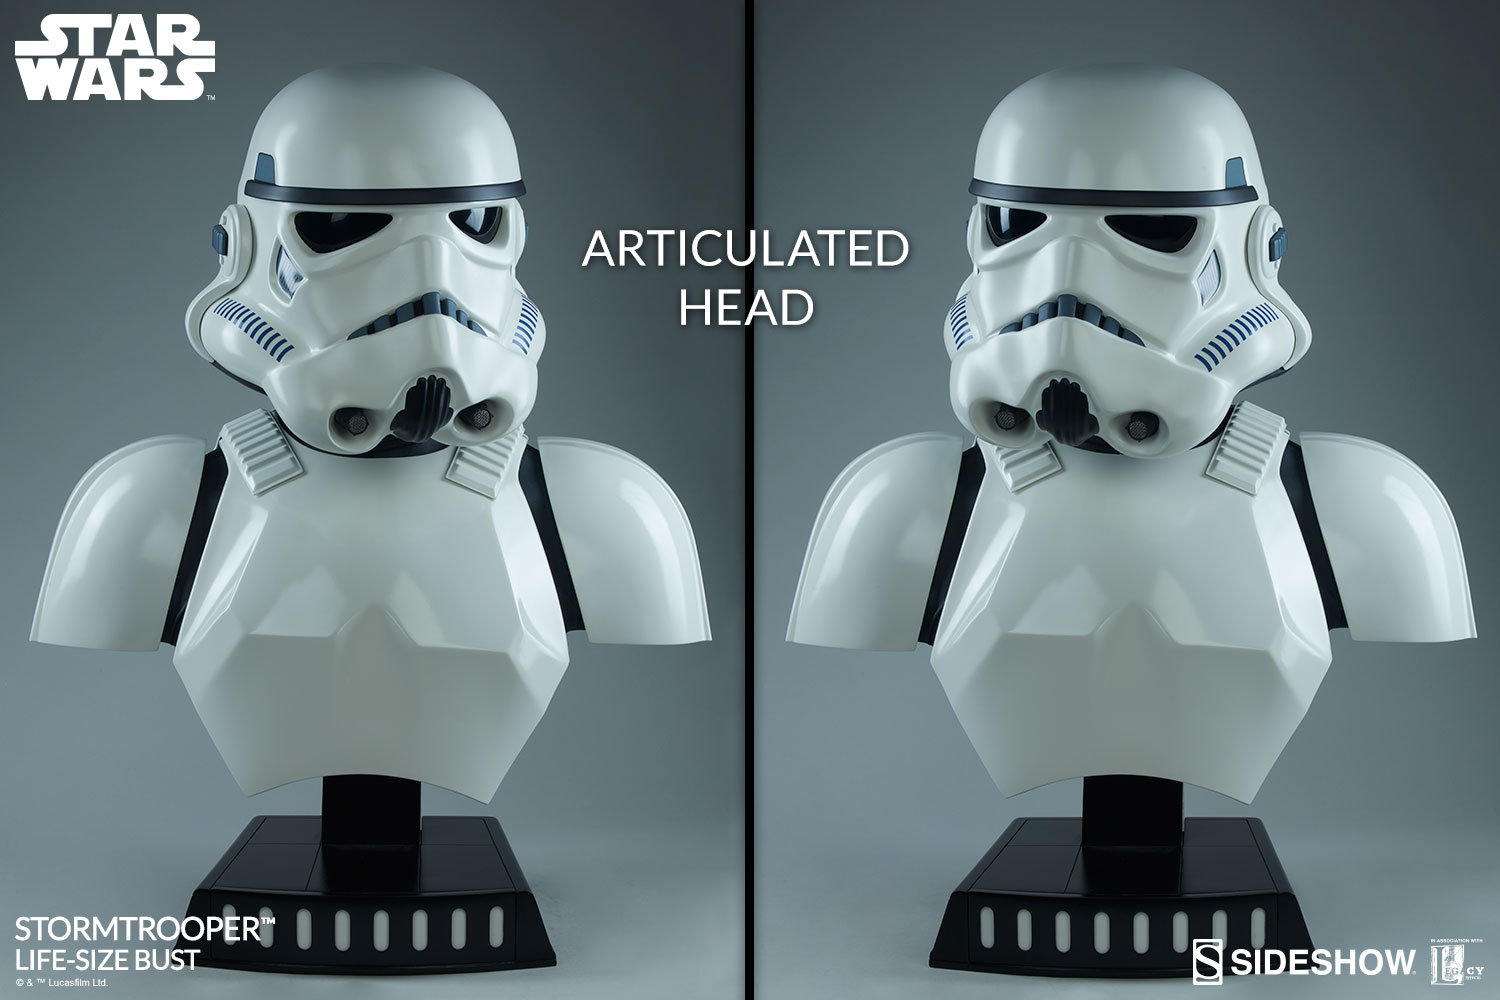 SW-Stormtrooper-life-size-bust-07